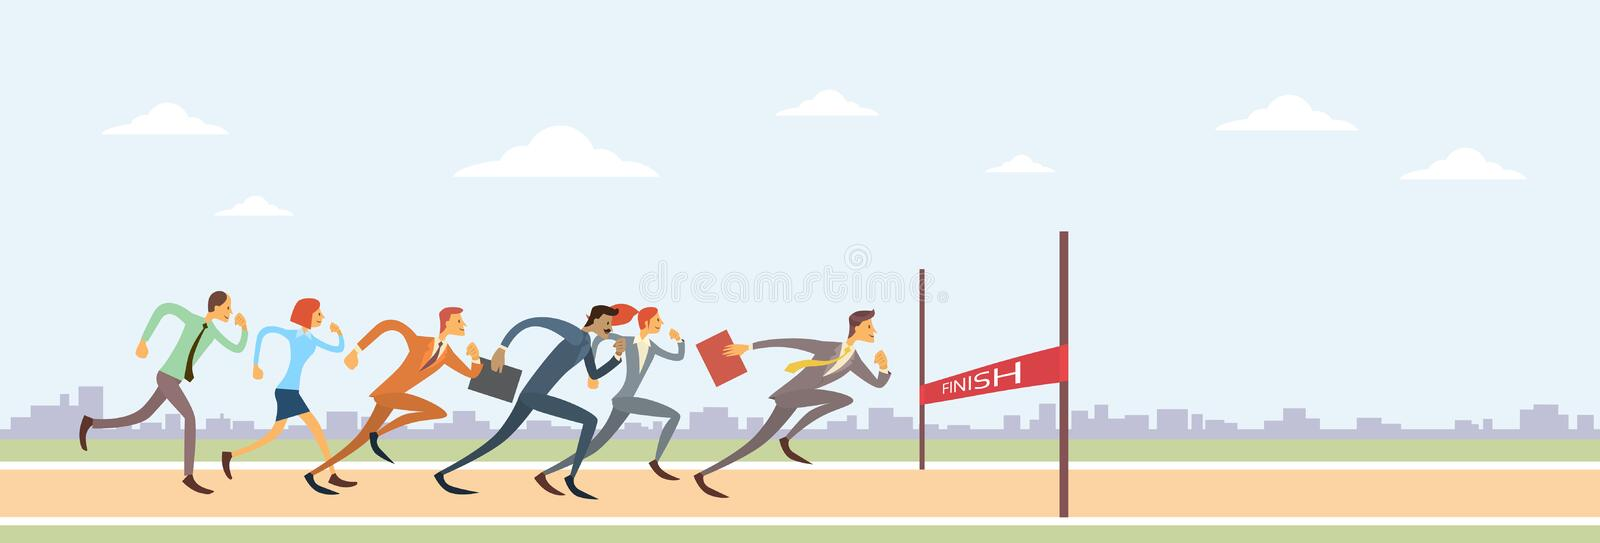 Business People Group Run To Finish Line Team Leader Competition vector illustration